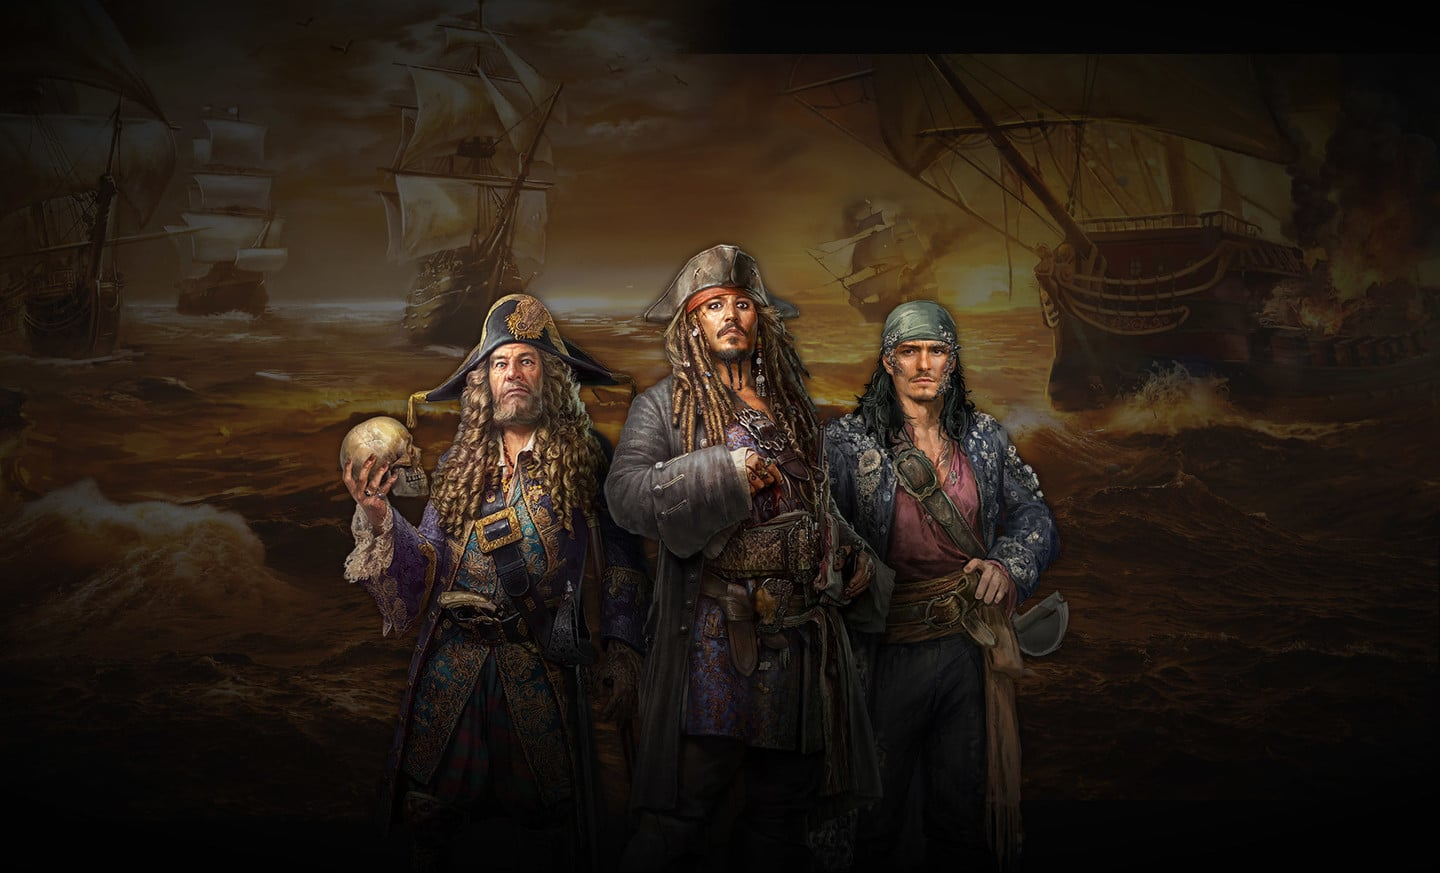 Pirates of the Caribbean mobile game